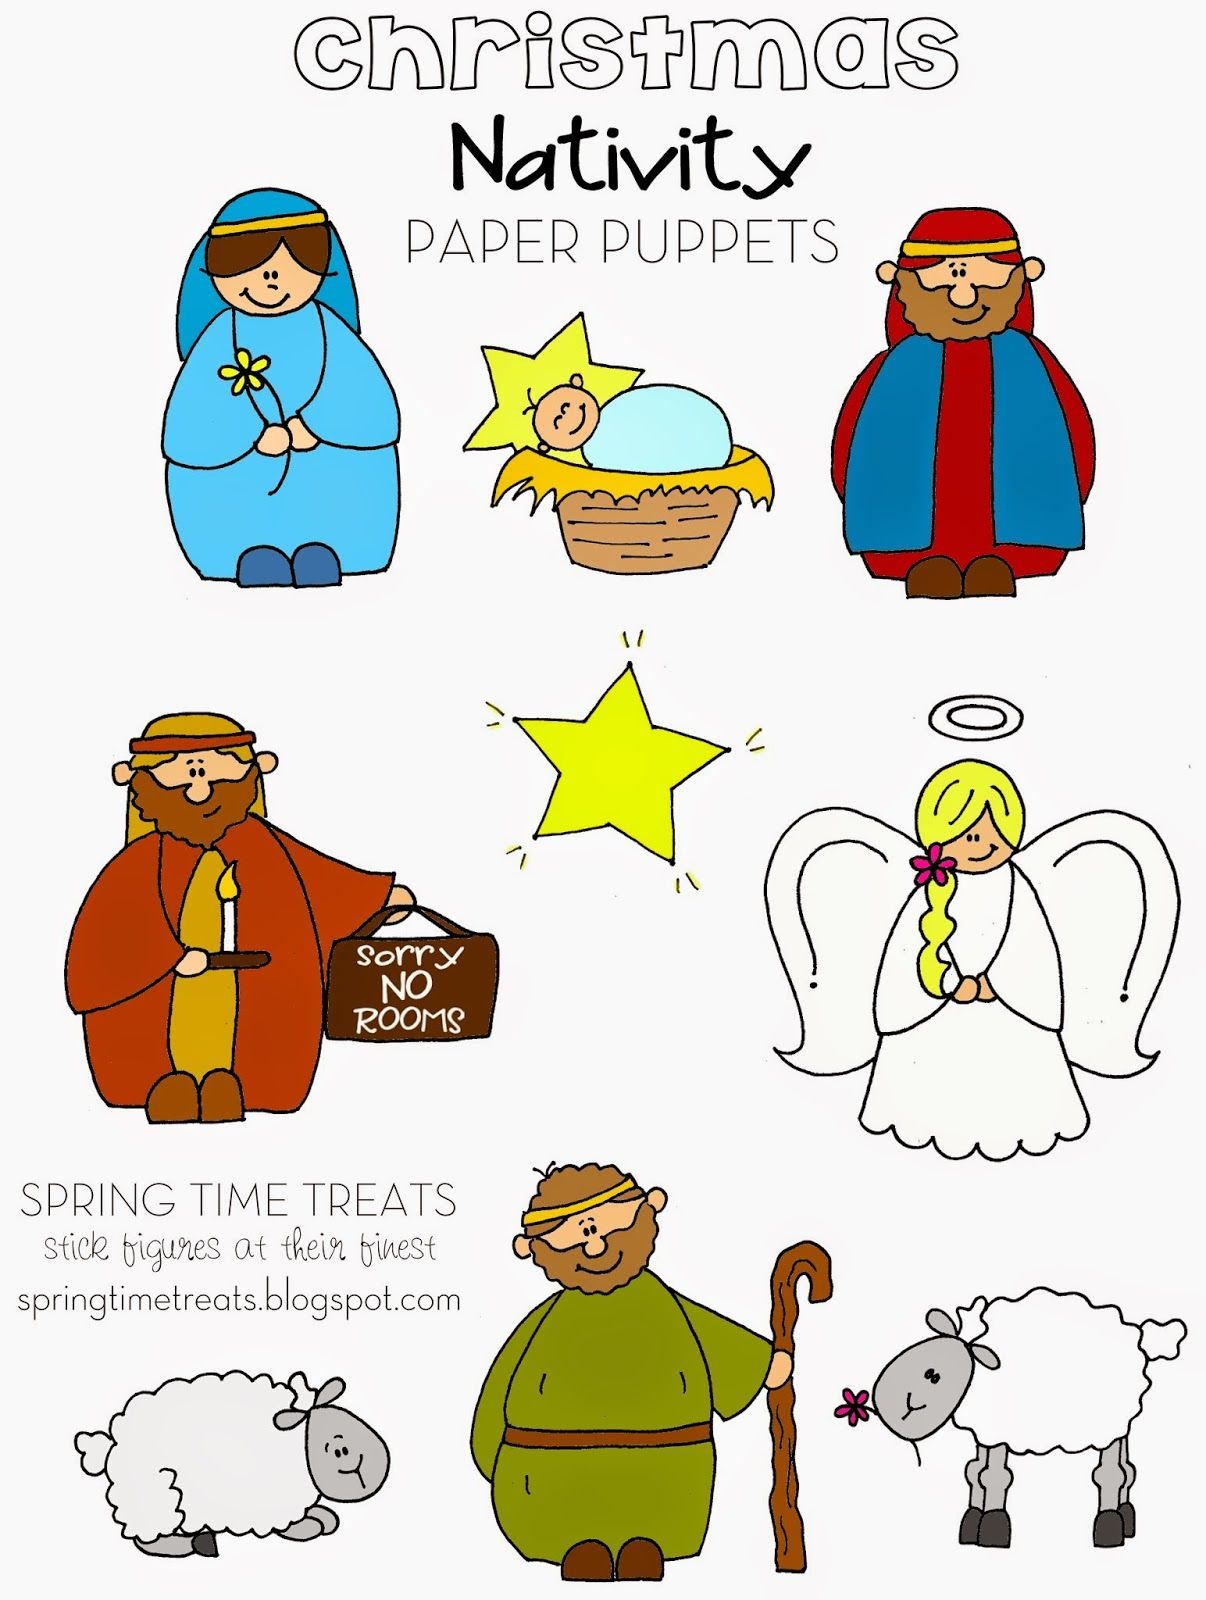 Spring Time Treats Nativity paper puppets FREE